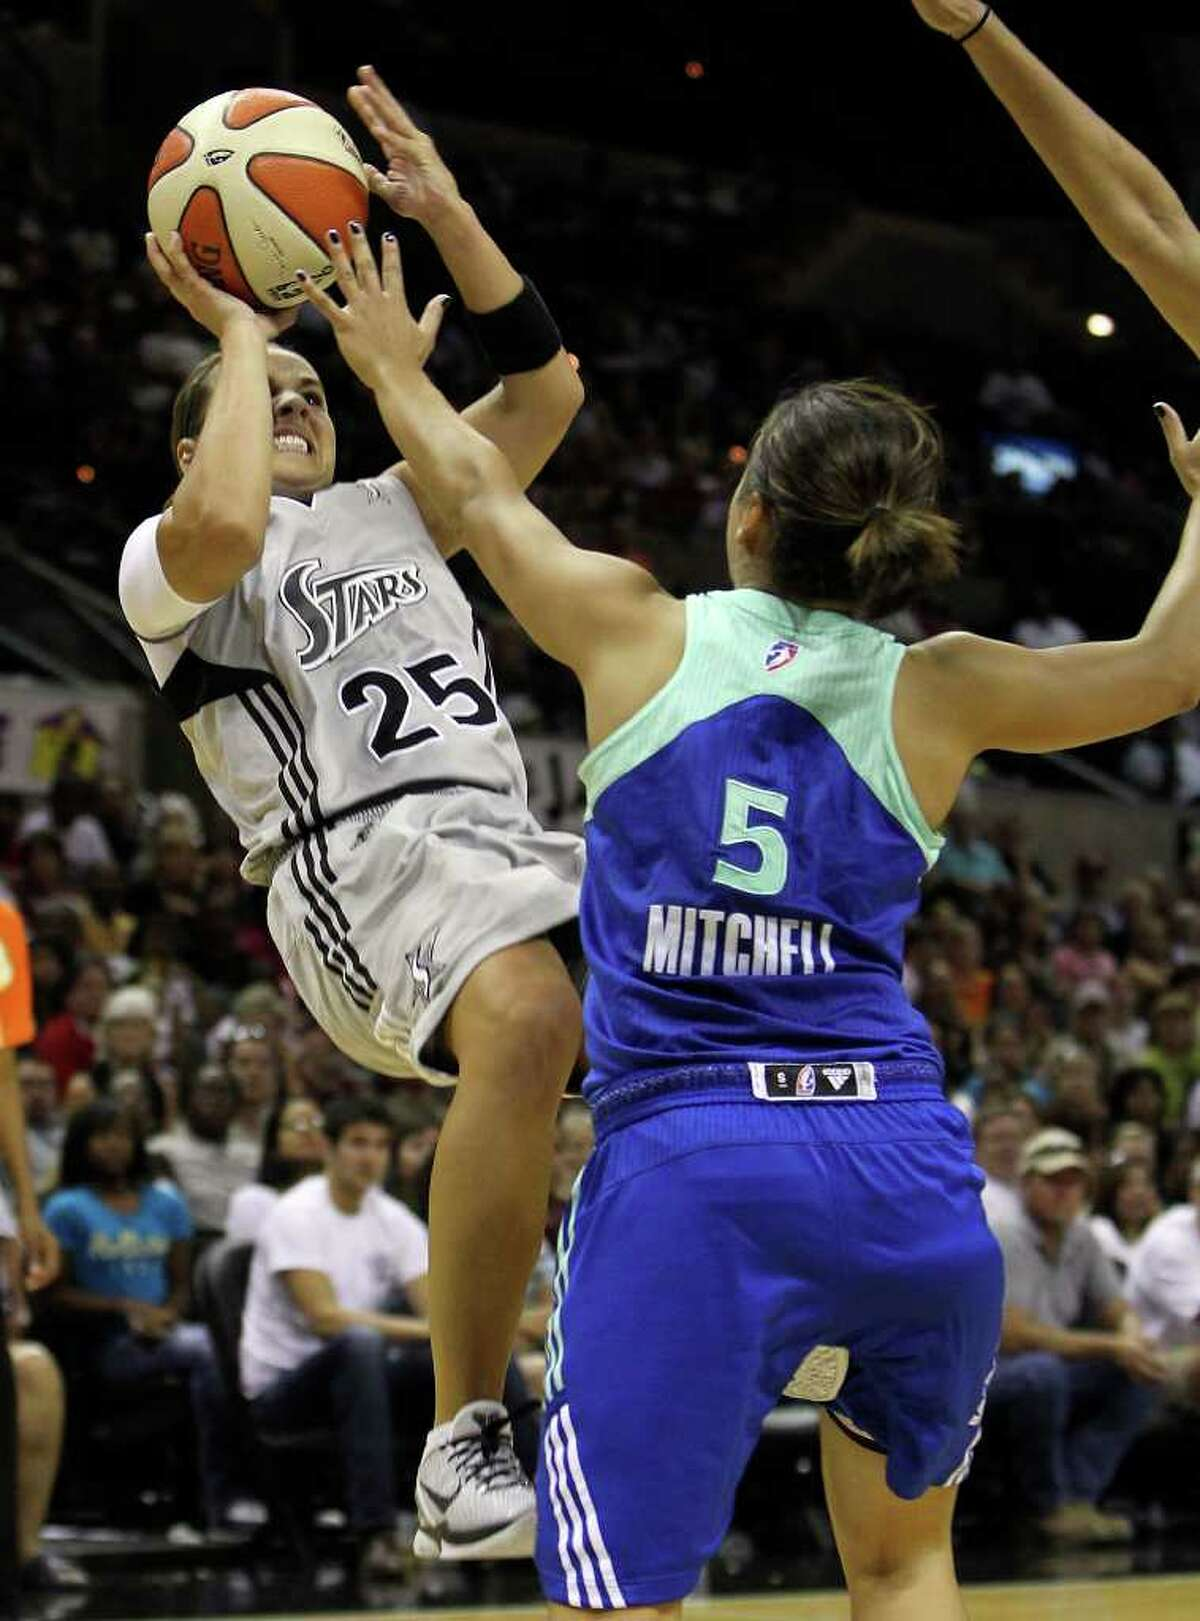 Silver Stars' Becky Hammon (left) falls back for a jumper against New York Liberty's Leilani Mitchell (05) in the second half at the AT&T Center on Friday, July 8, 2011. Silver Stars lose to Liberty, 73-76. Kin Man Hui/kmhui@express-news.net